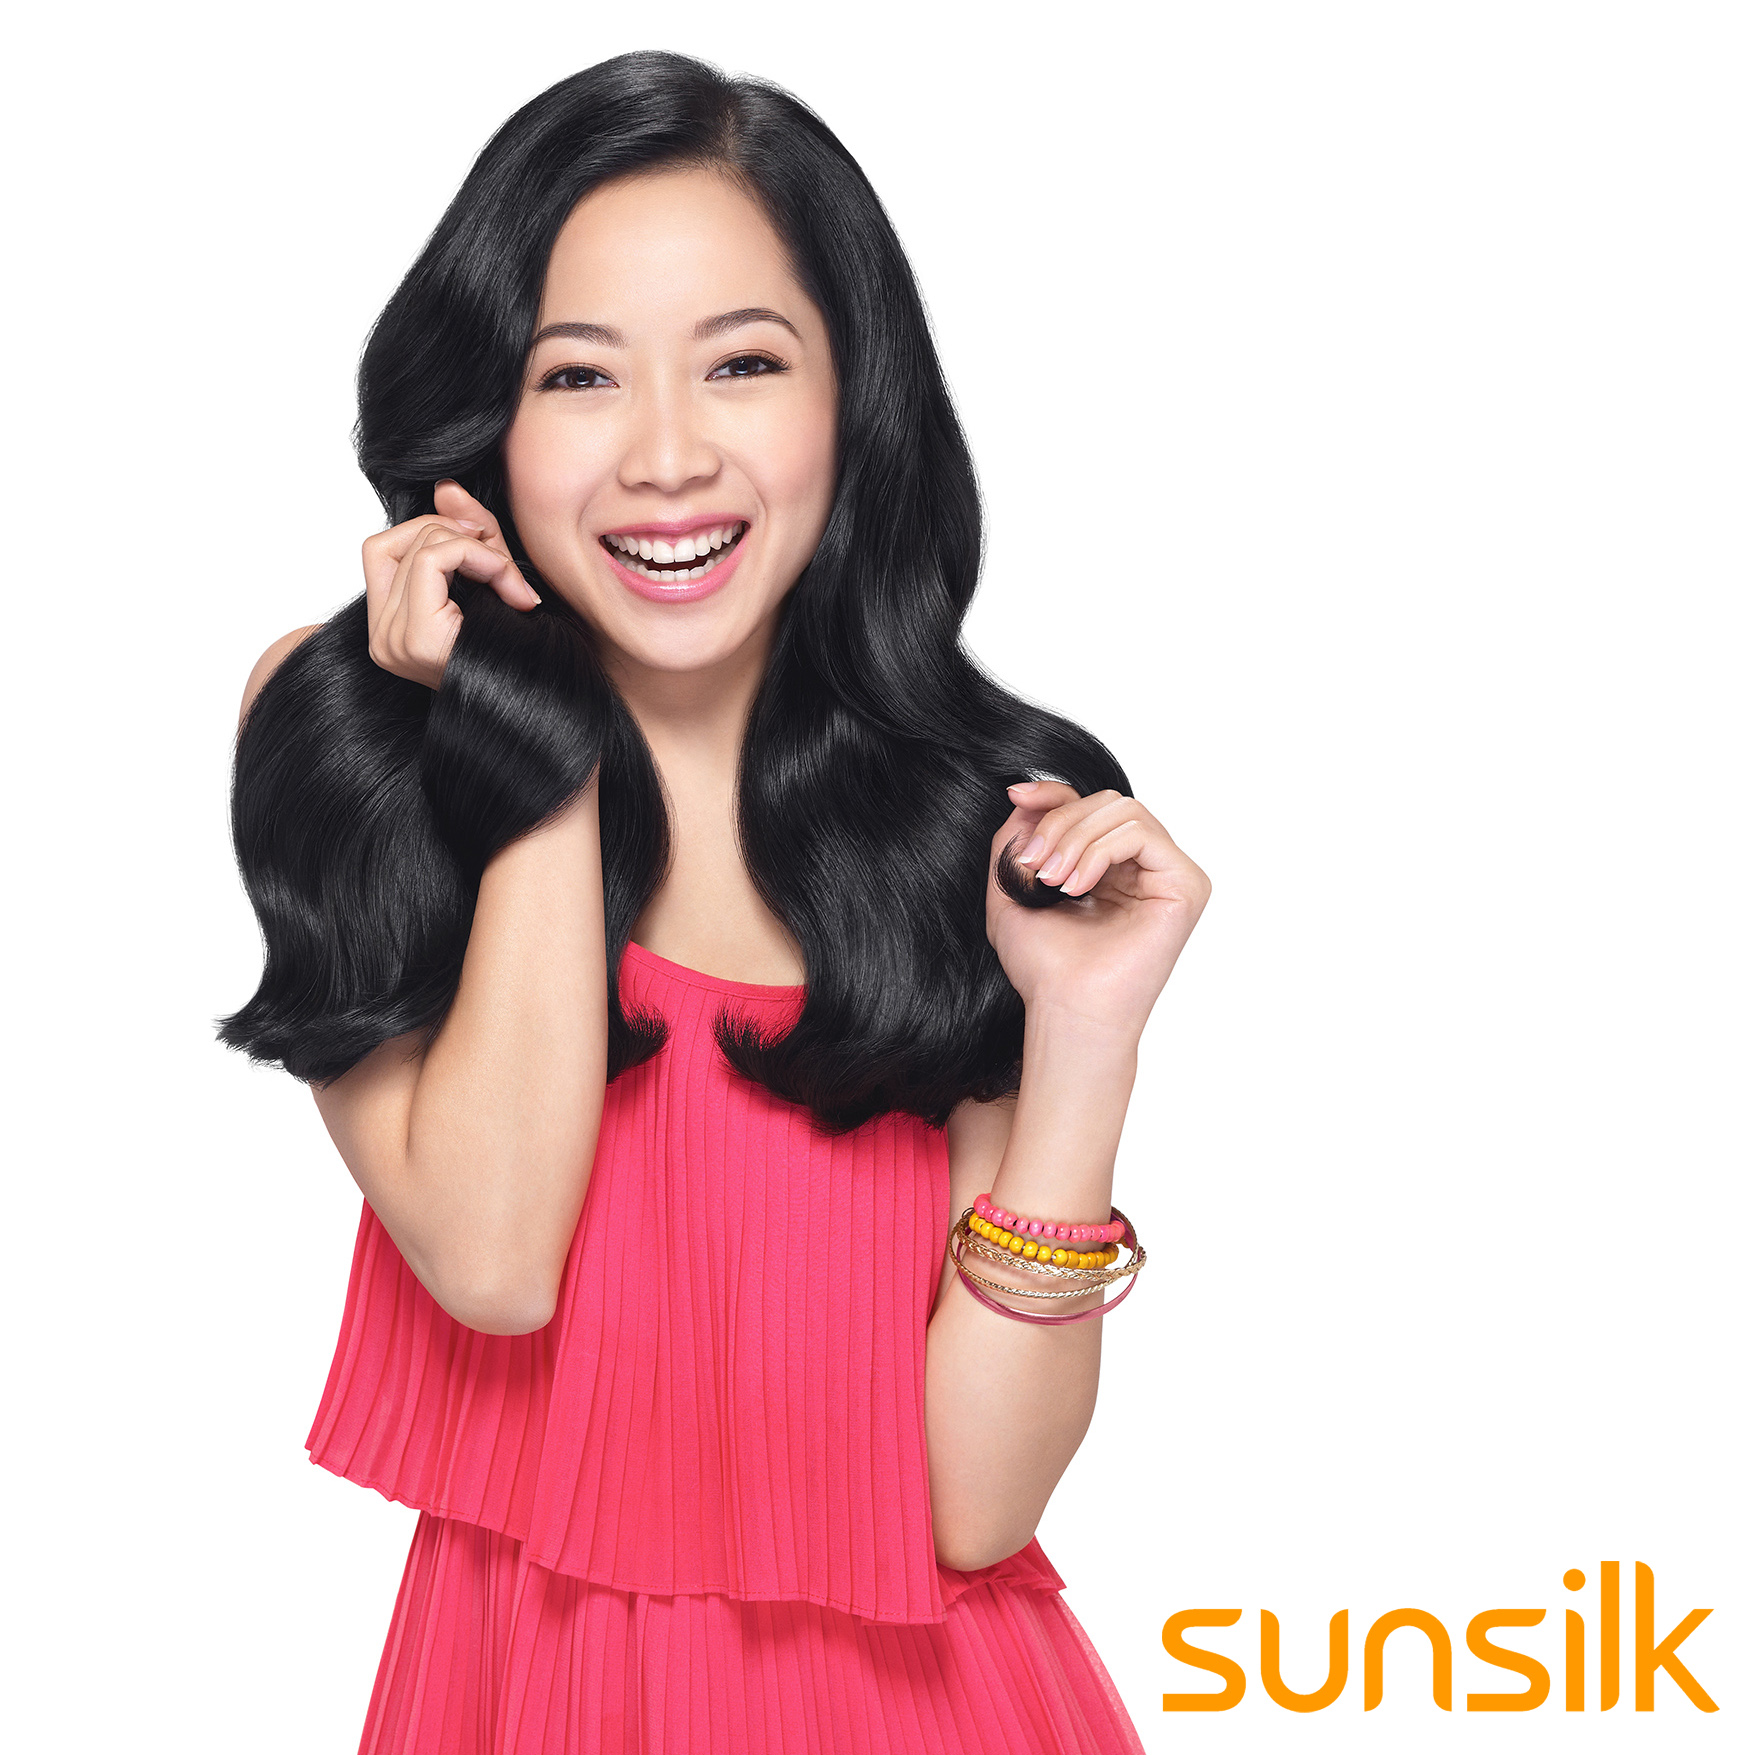 Sunsilk - Karina Salim